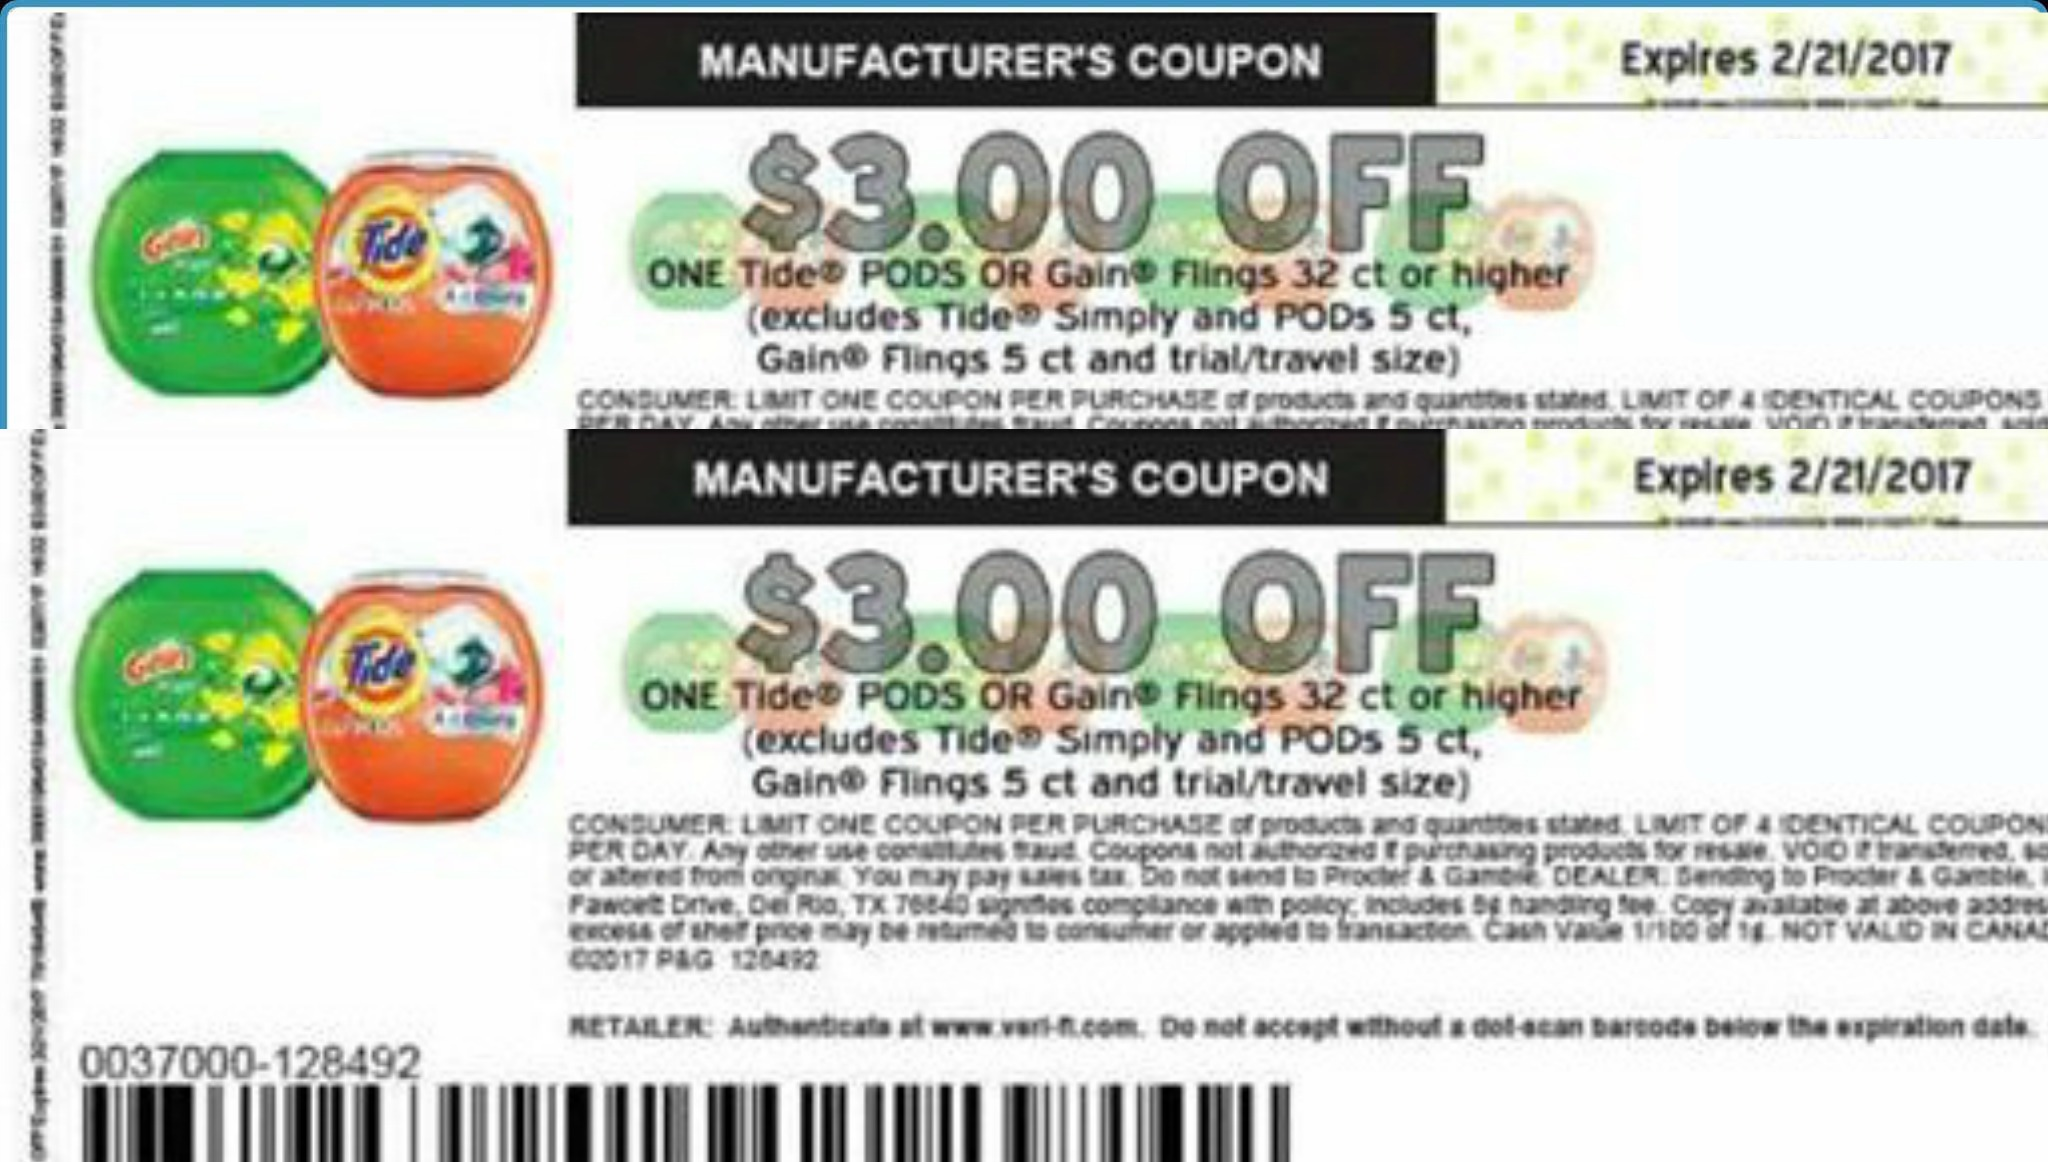 graphic regarding Gain Coupons Printable known as Sizzling Tide Pods or Revenue Flings $3/1 printable coupon